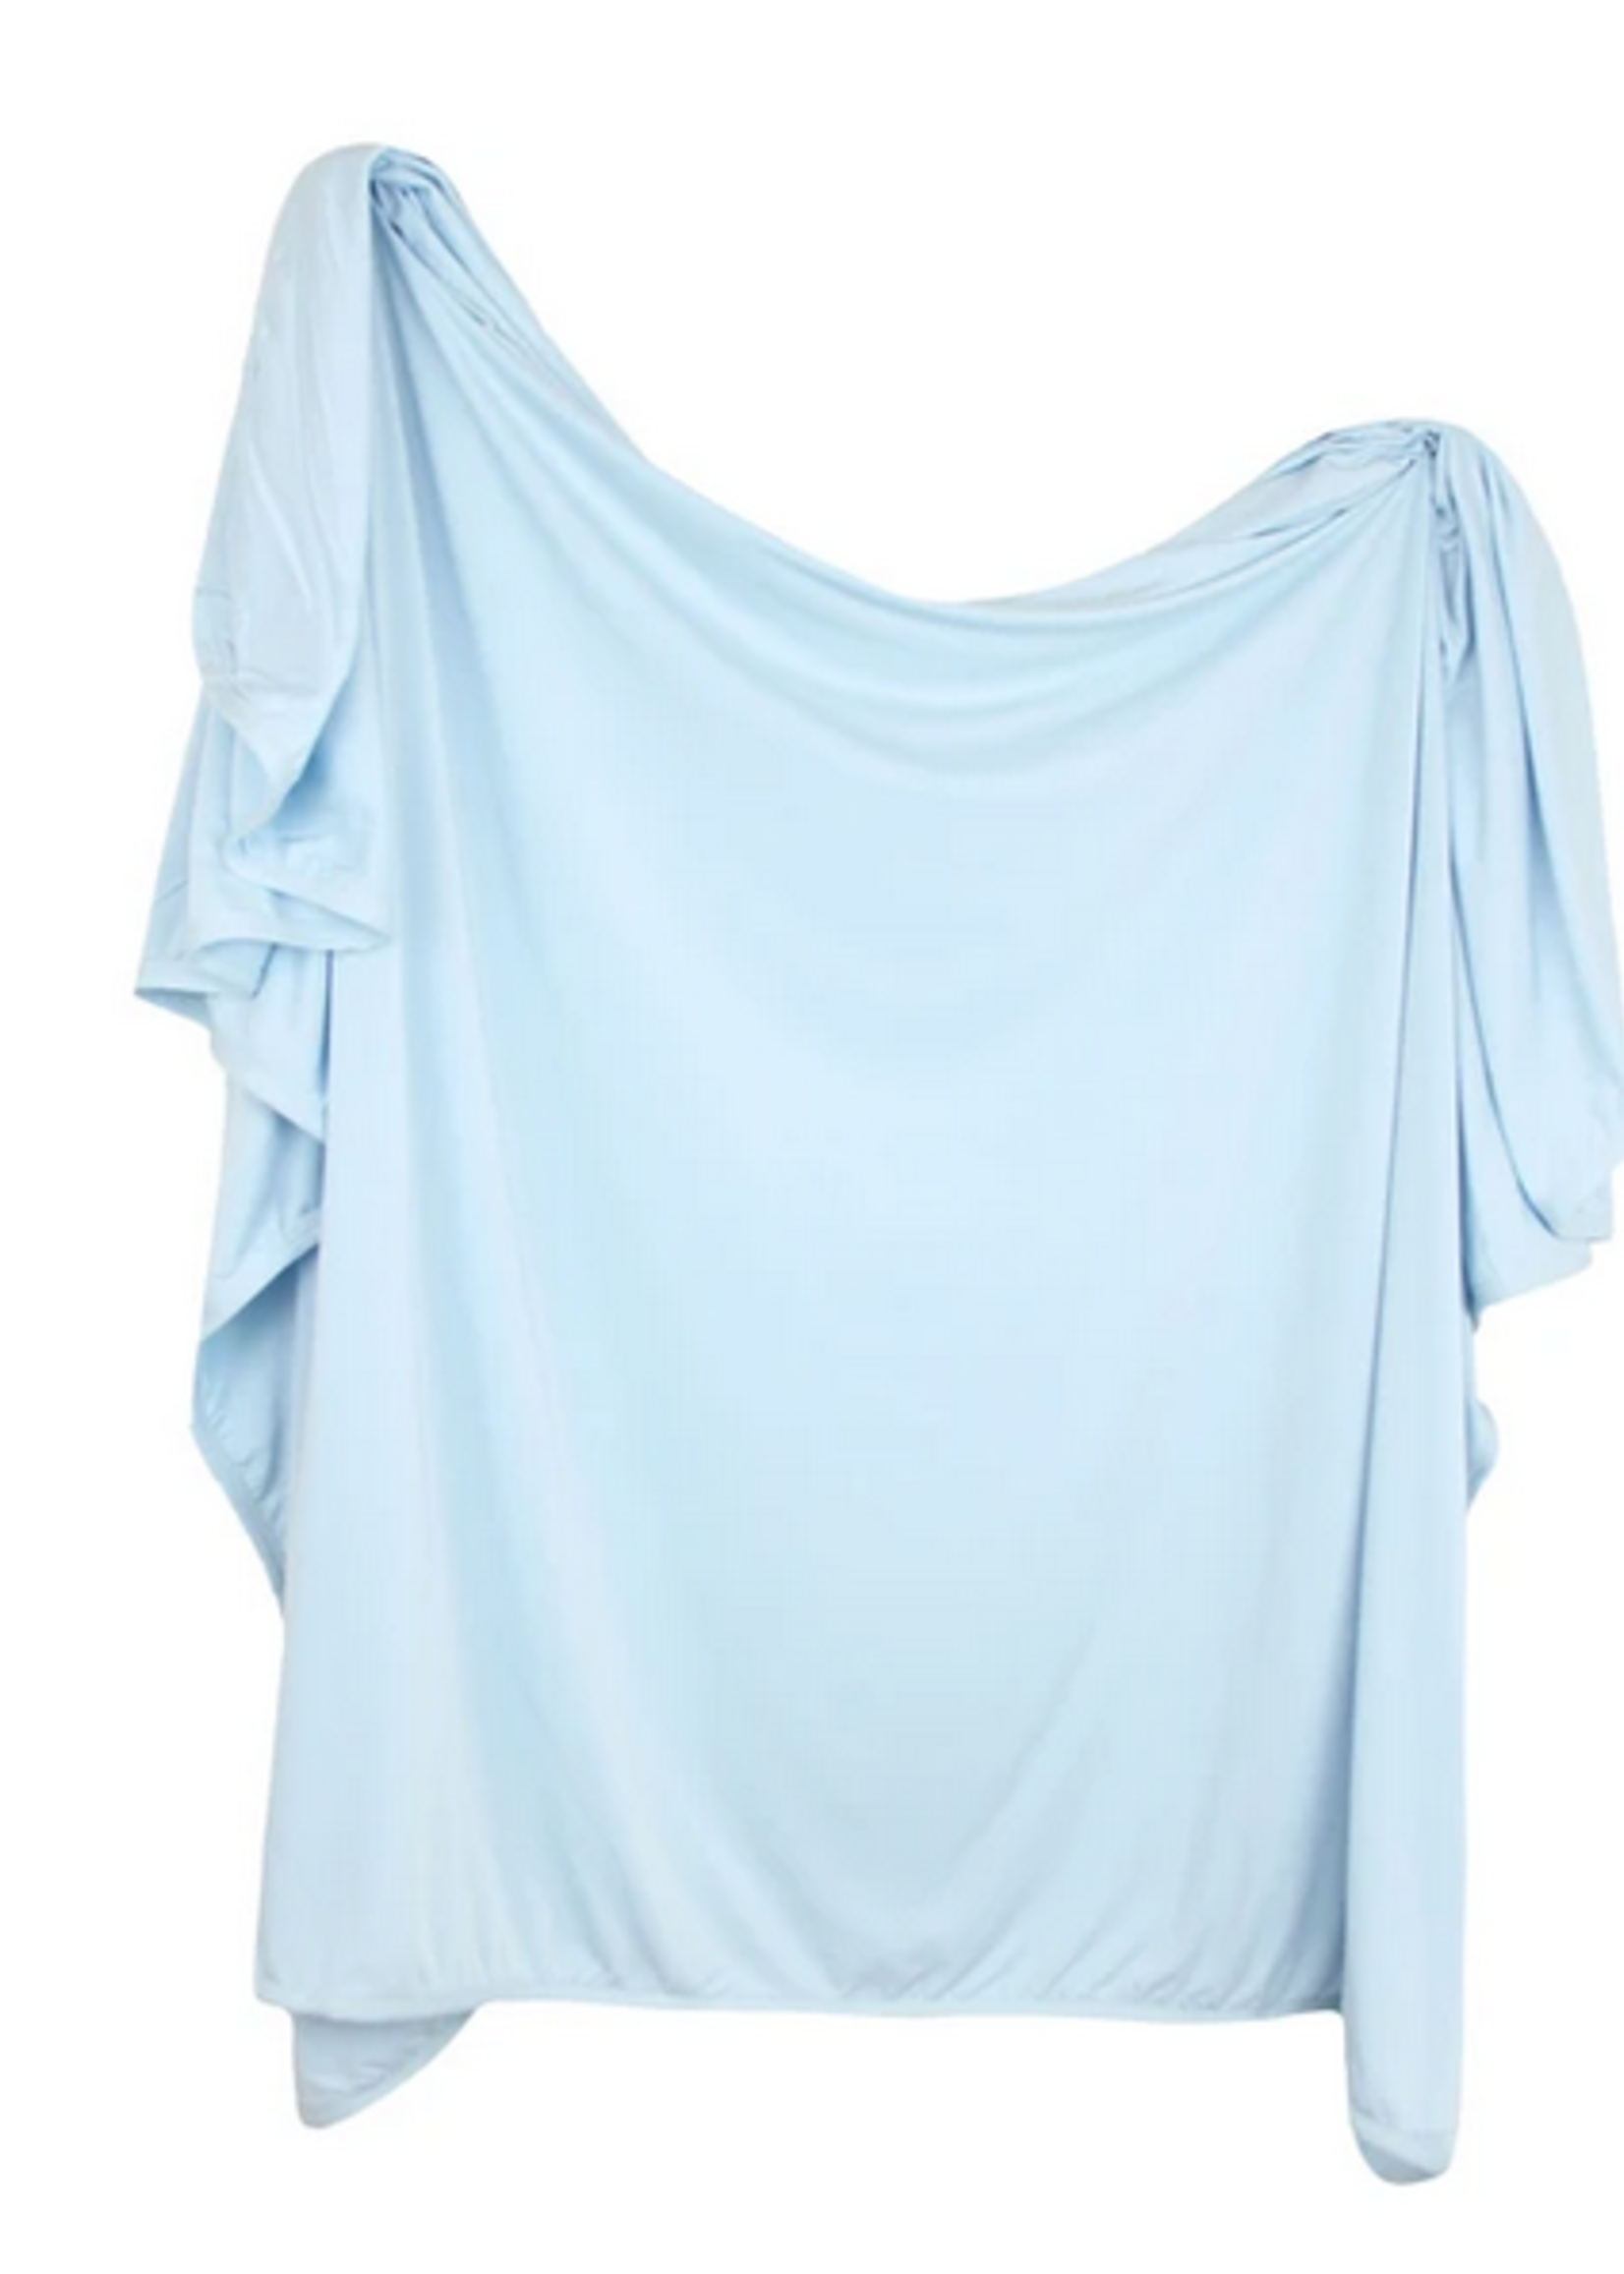 Elitaire Petite Jude Baby Blue Knit Swaddle Blanket